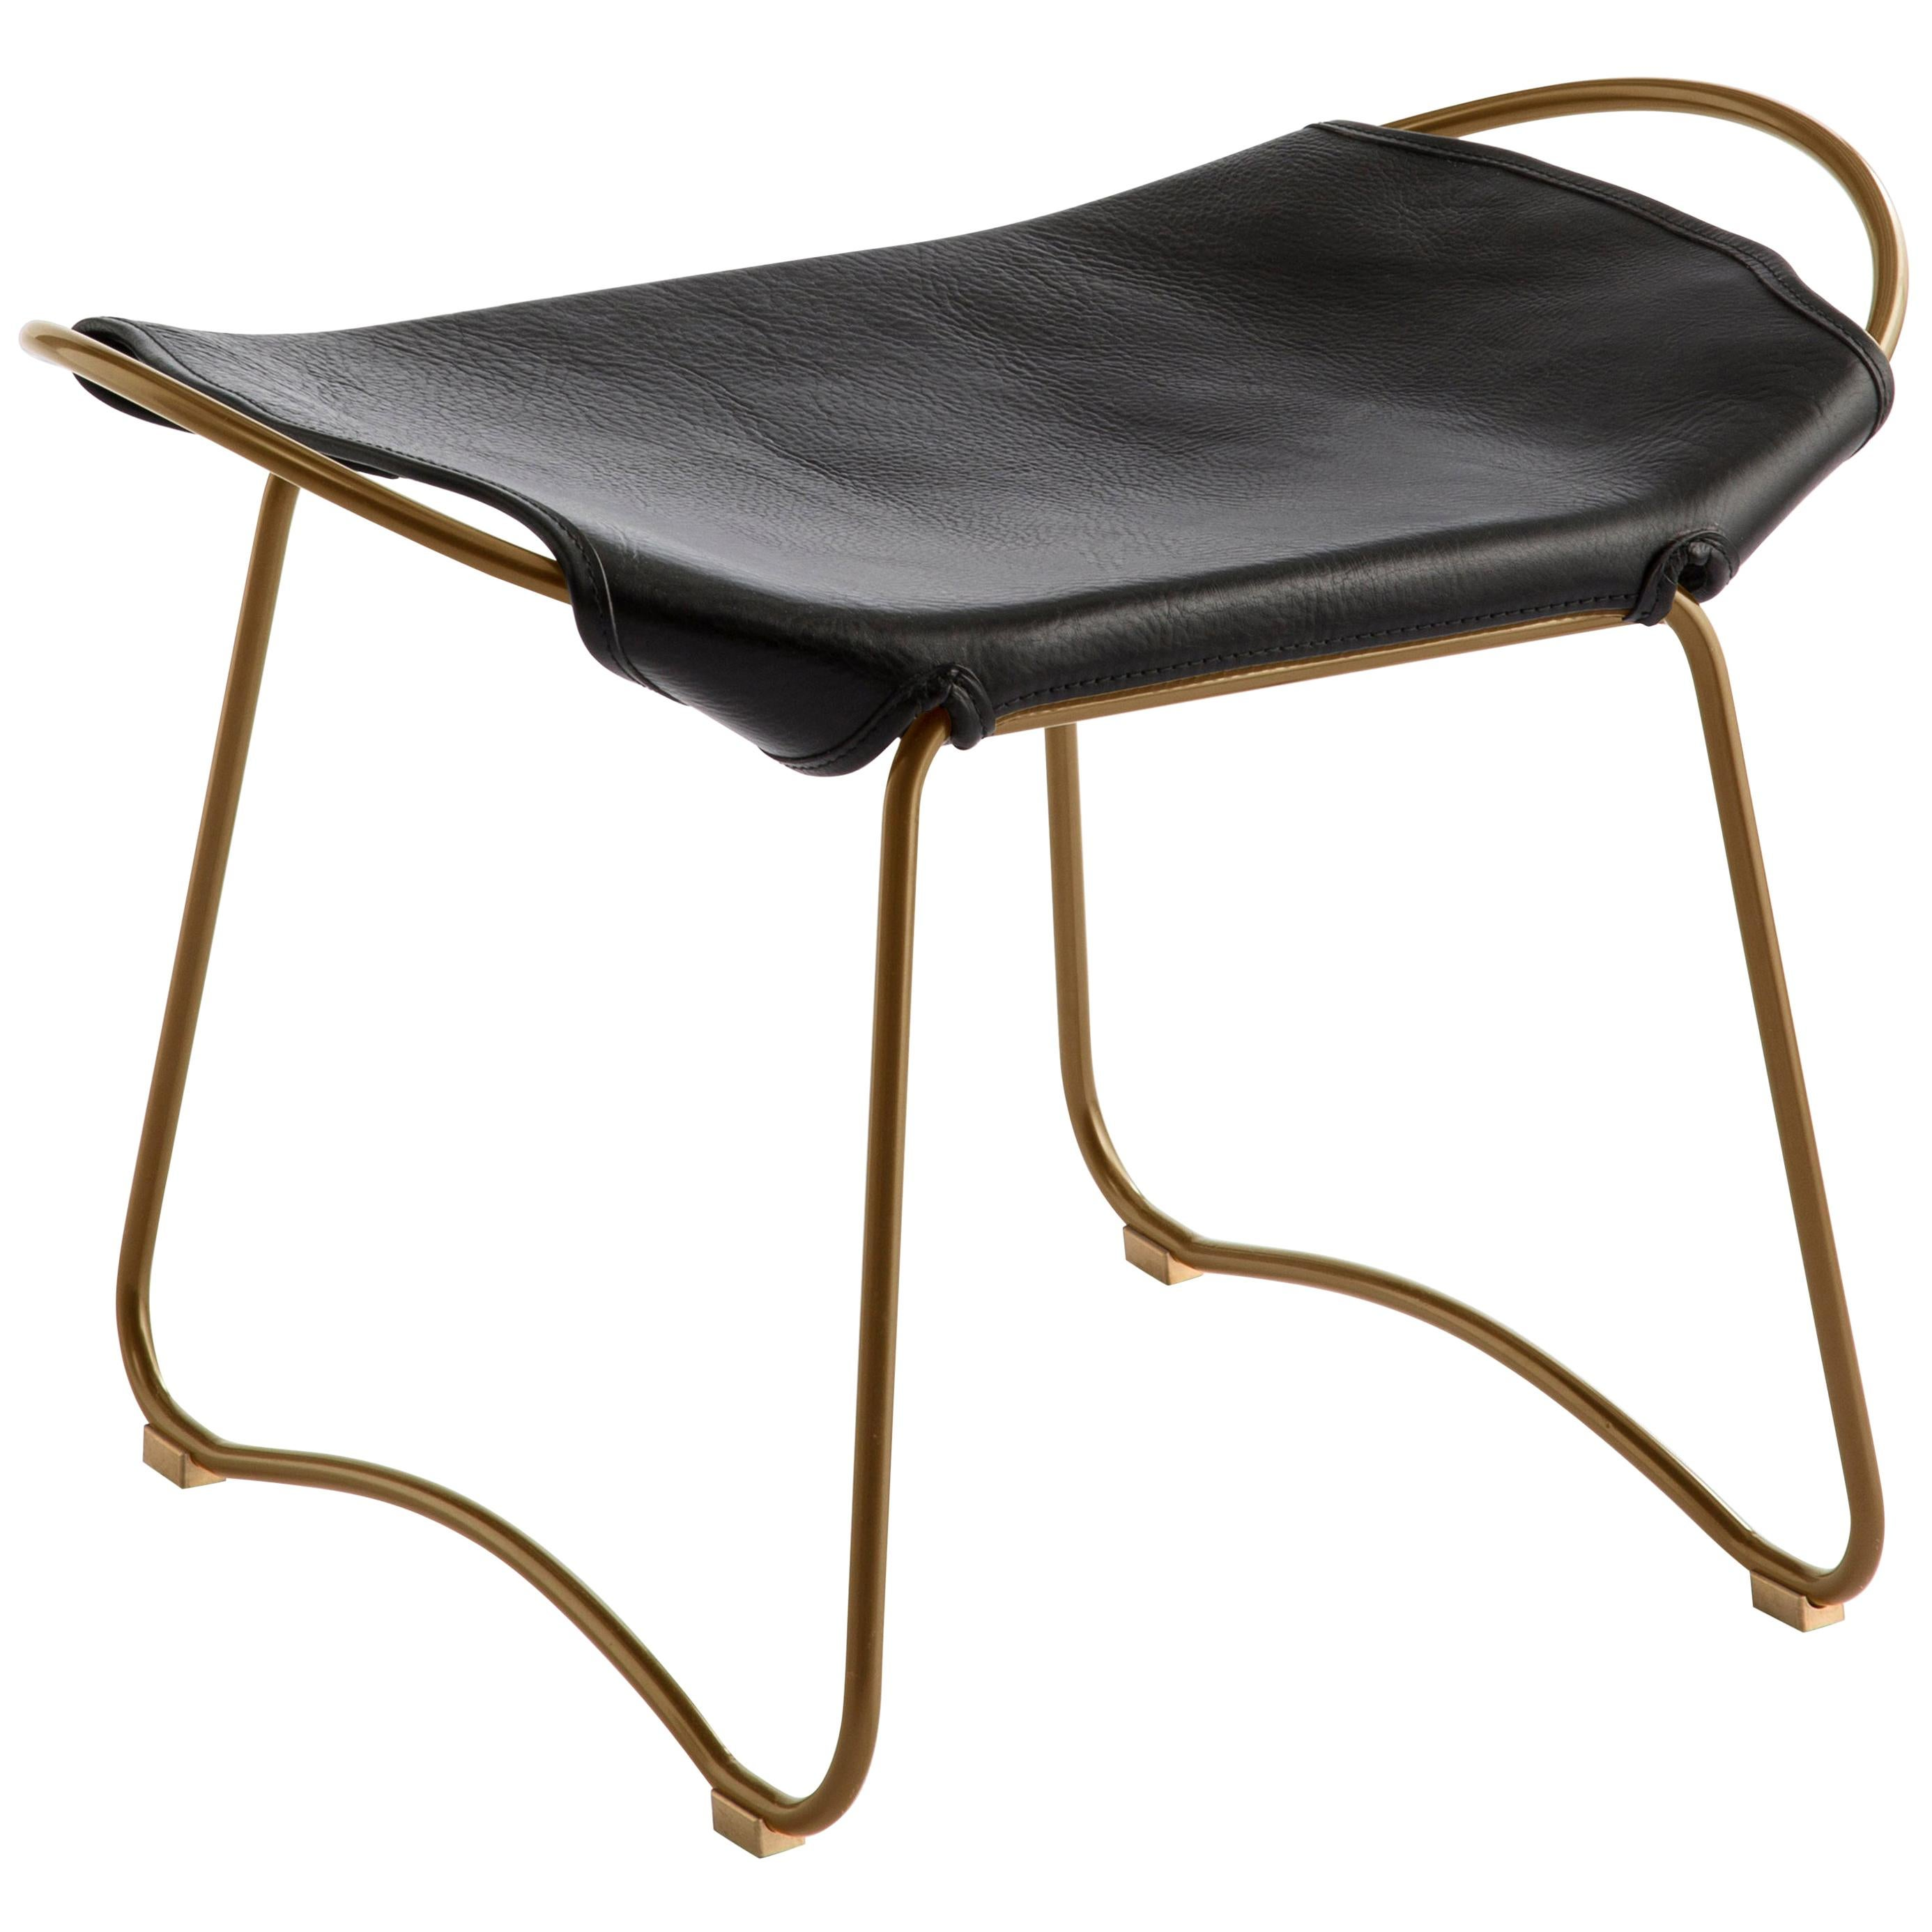 Footstool, Brass Steel and Black Saddle Leather, Modern Style, Hug Collection